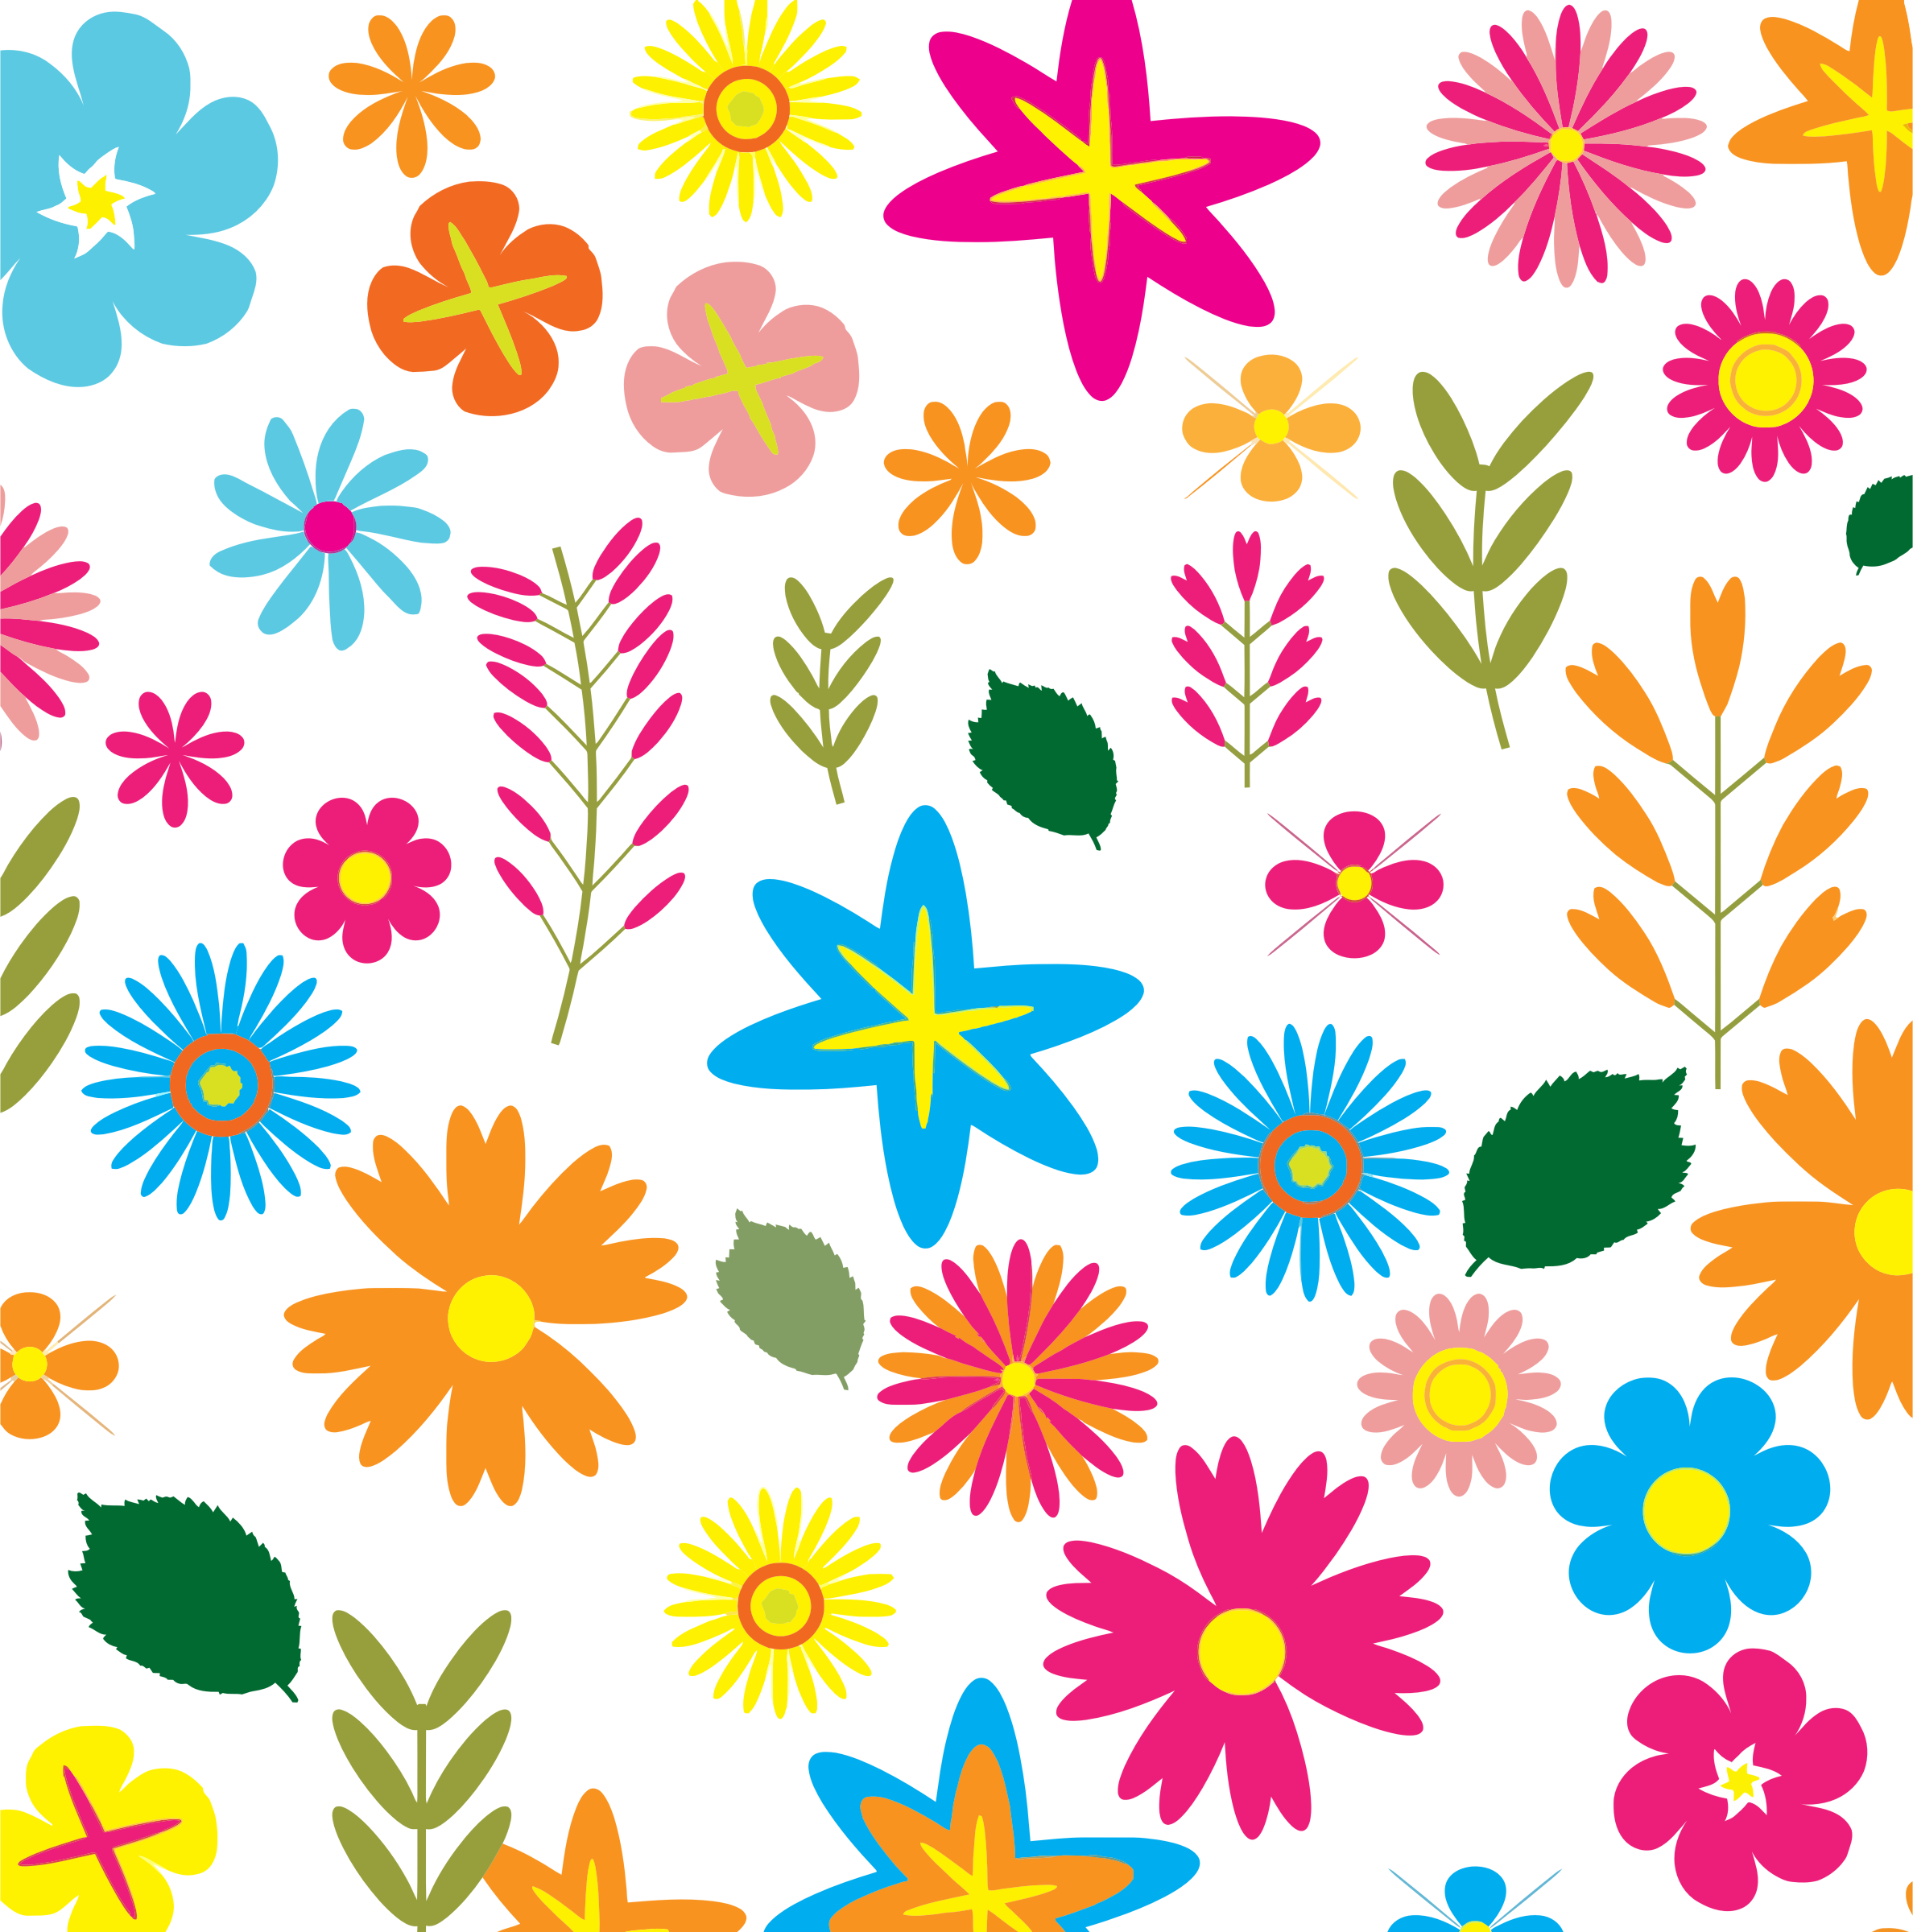 colorful floral background patterns - photo #2